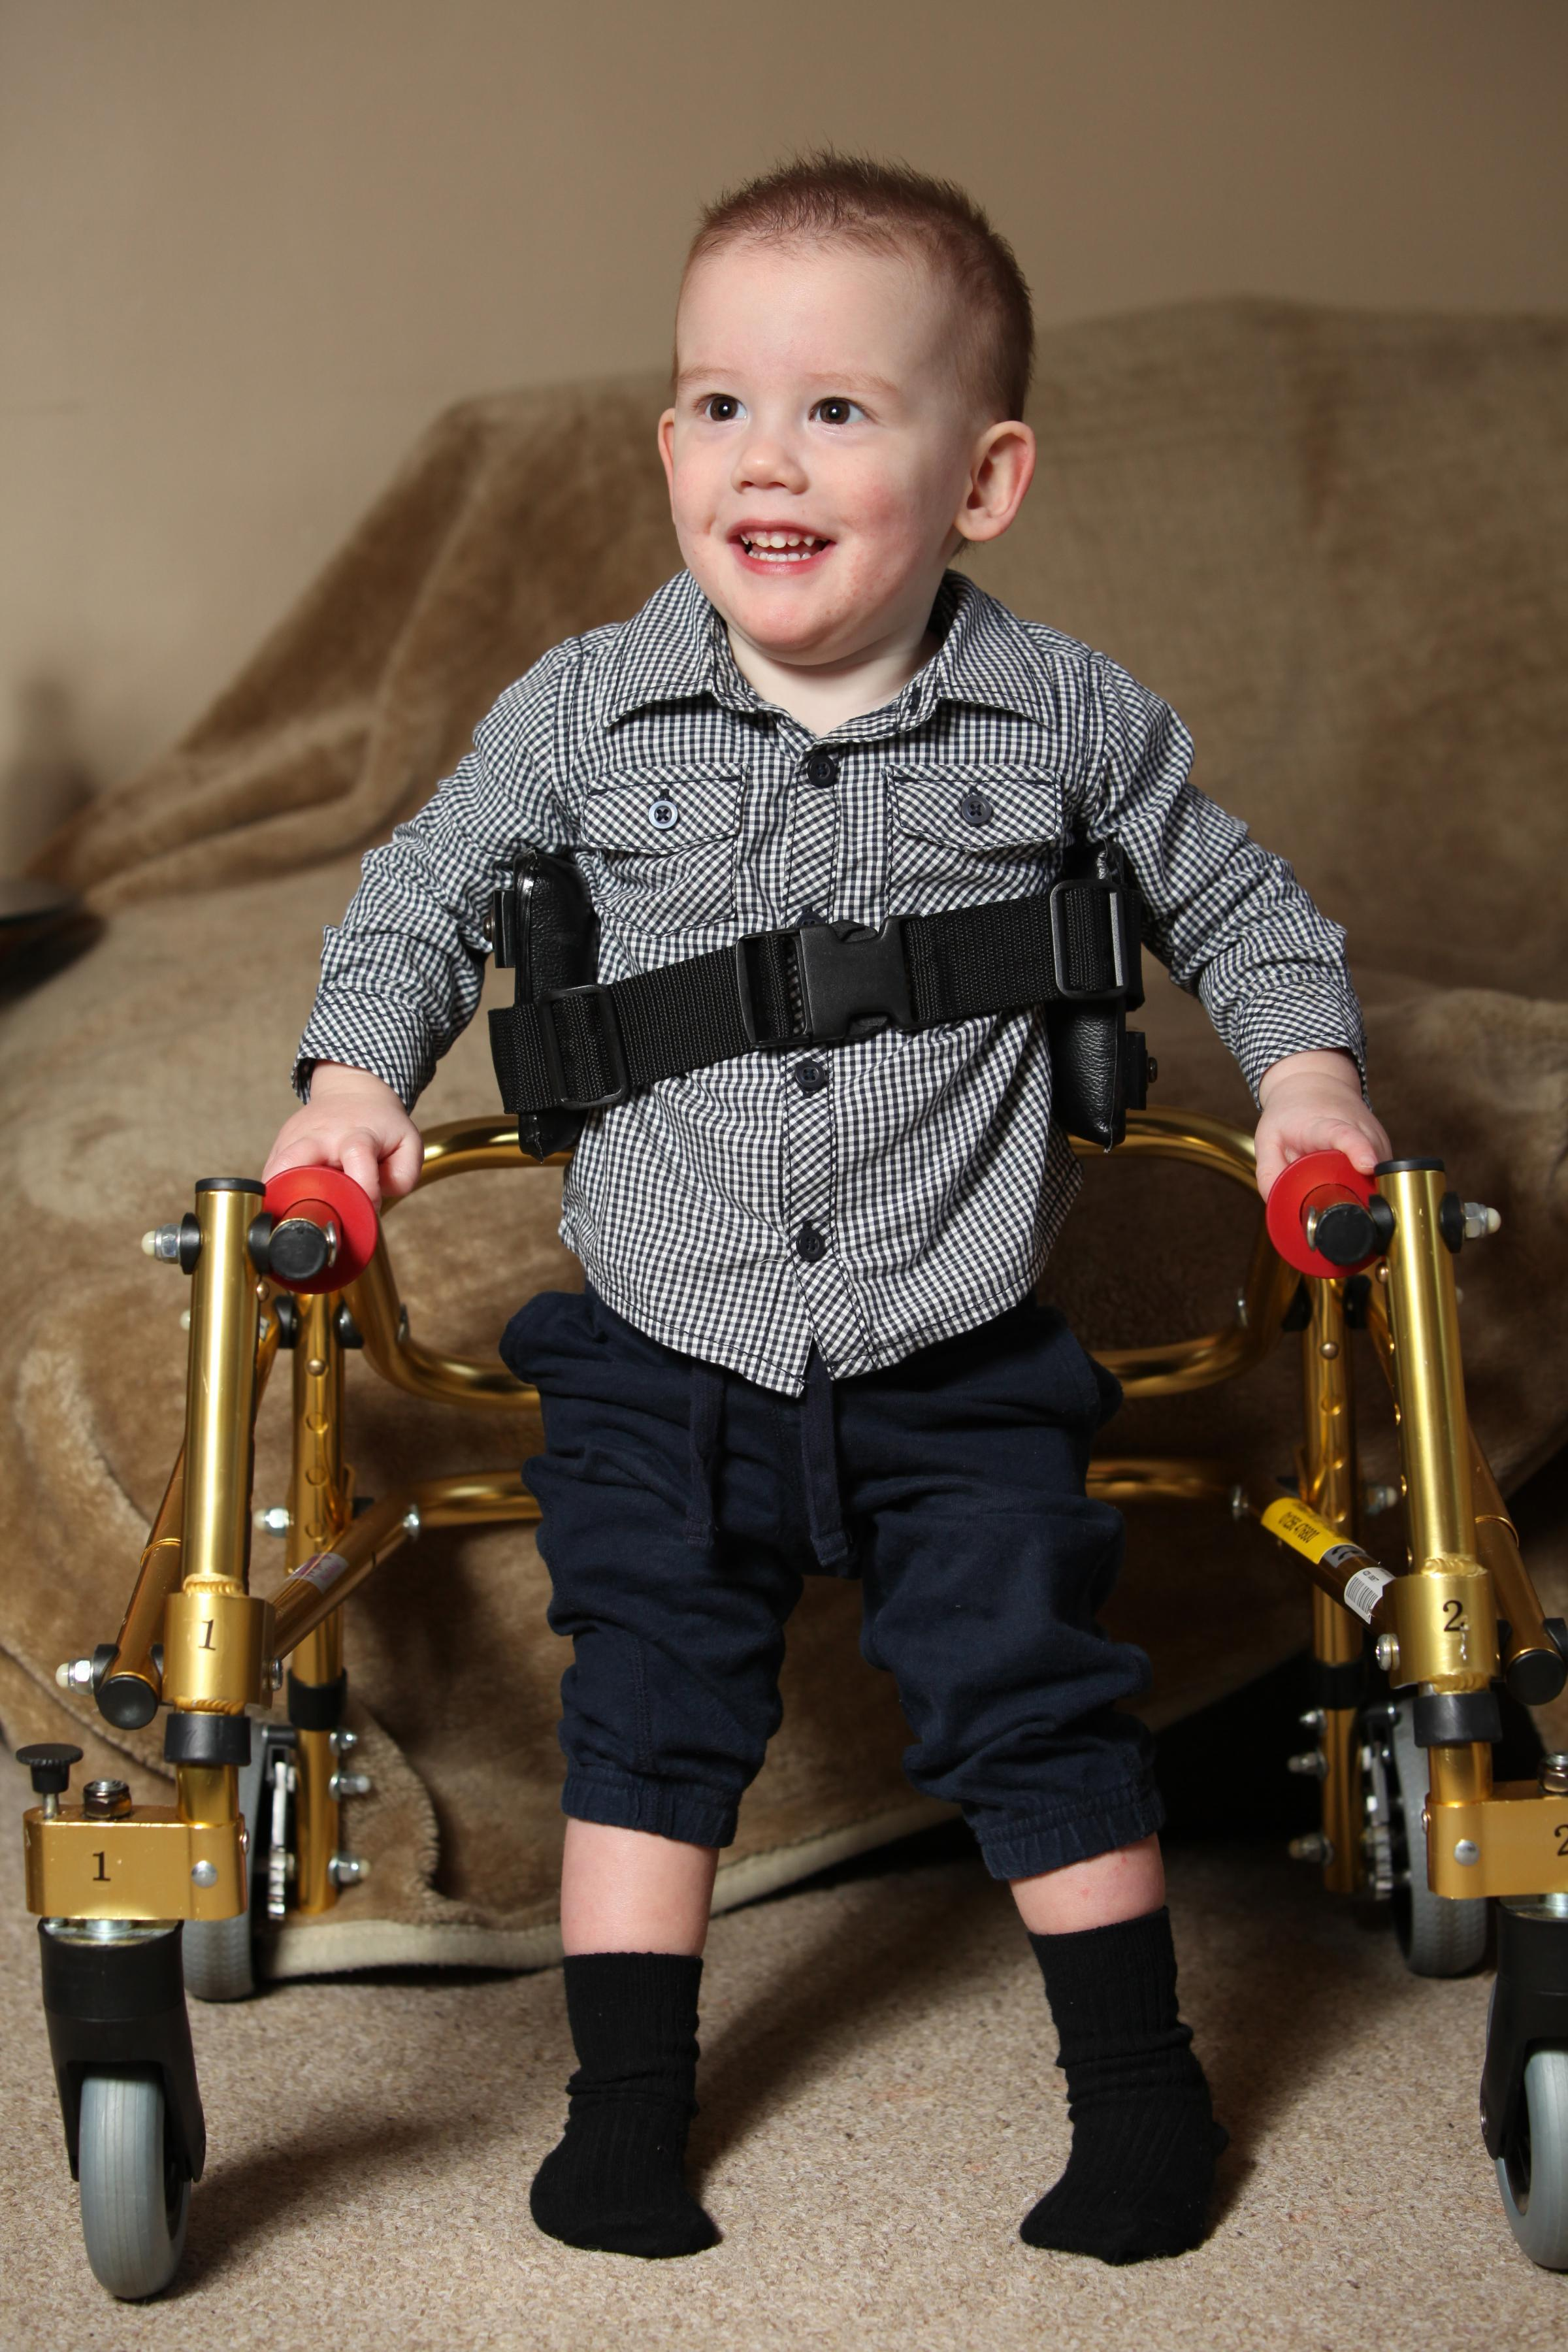 James Mills needs a £50,000 for a vital operation to help him walk